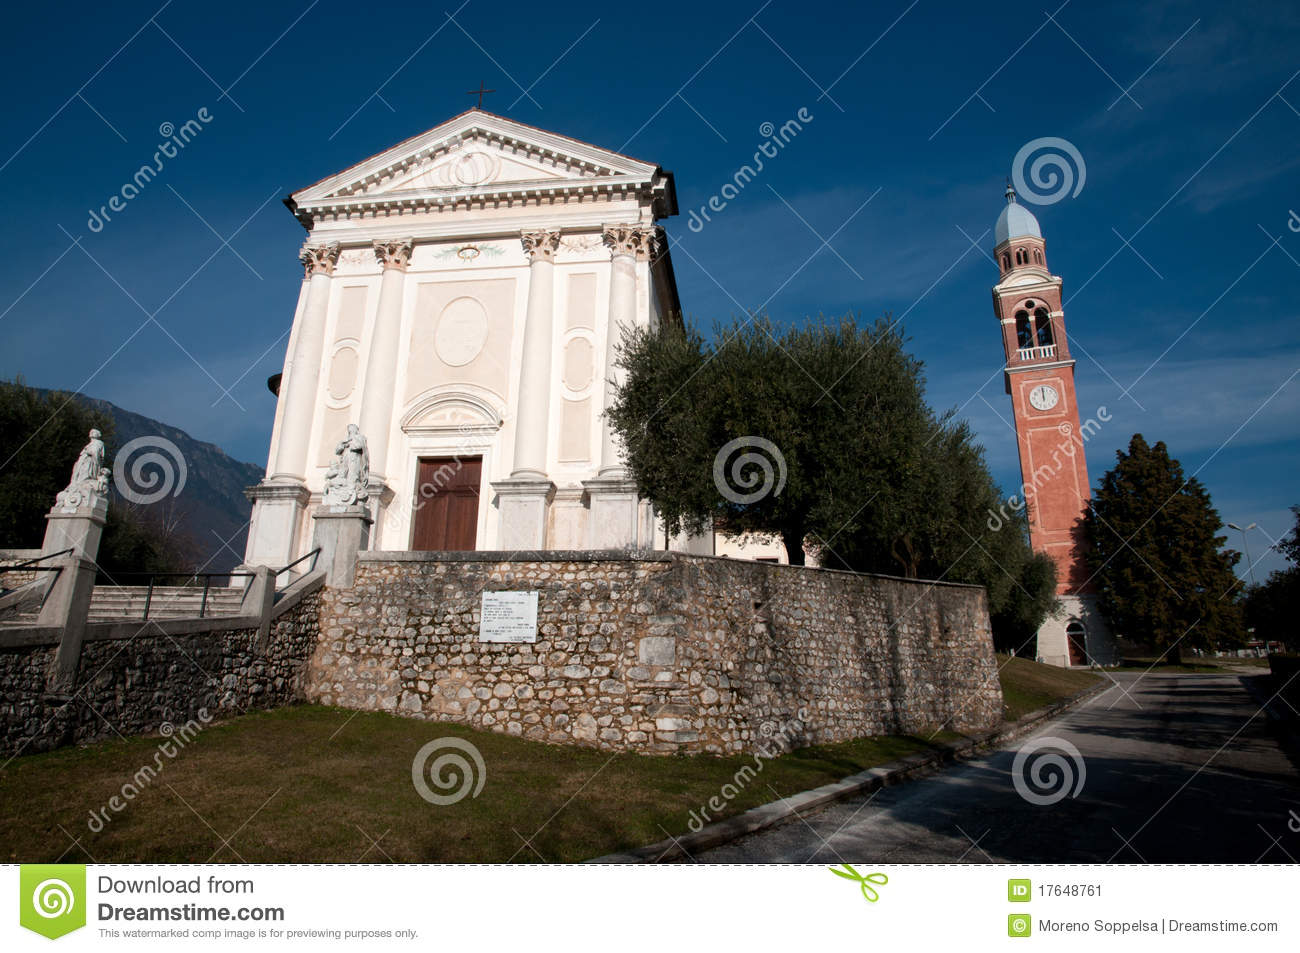 Saint eulaia church borso del grappa stock image image for Borso del grappa piscine